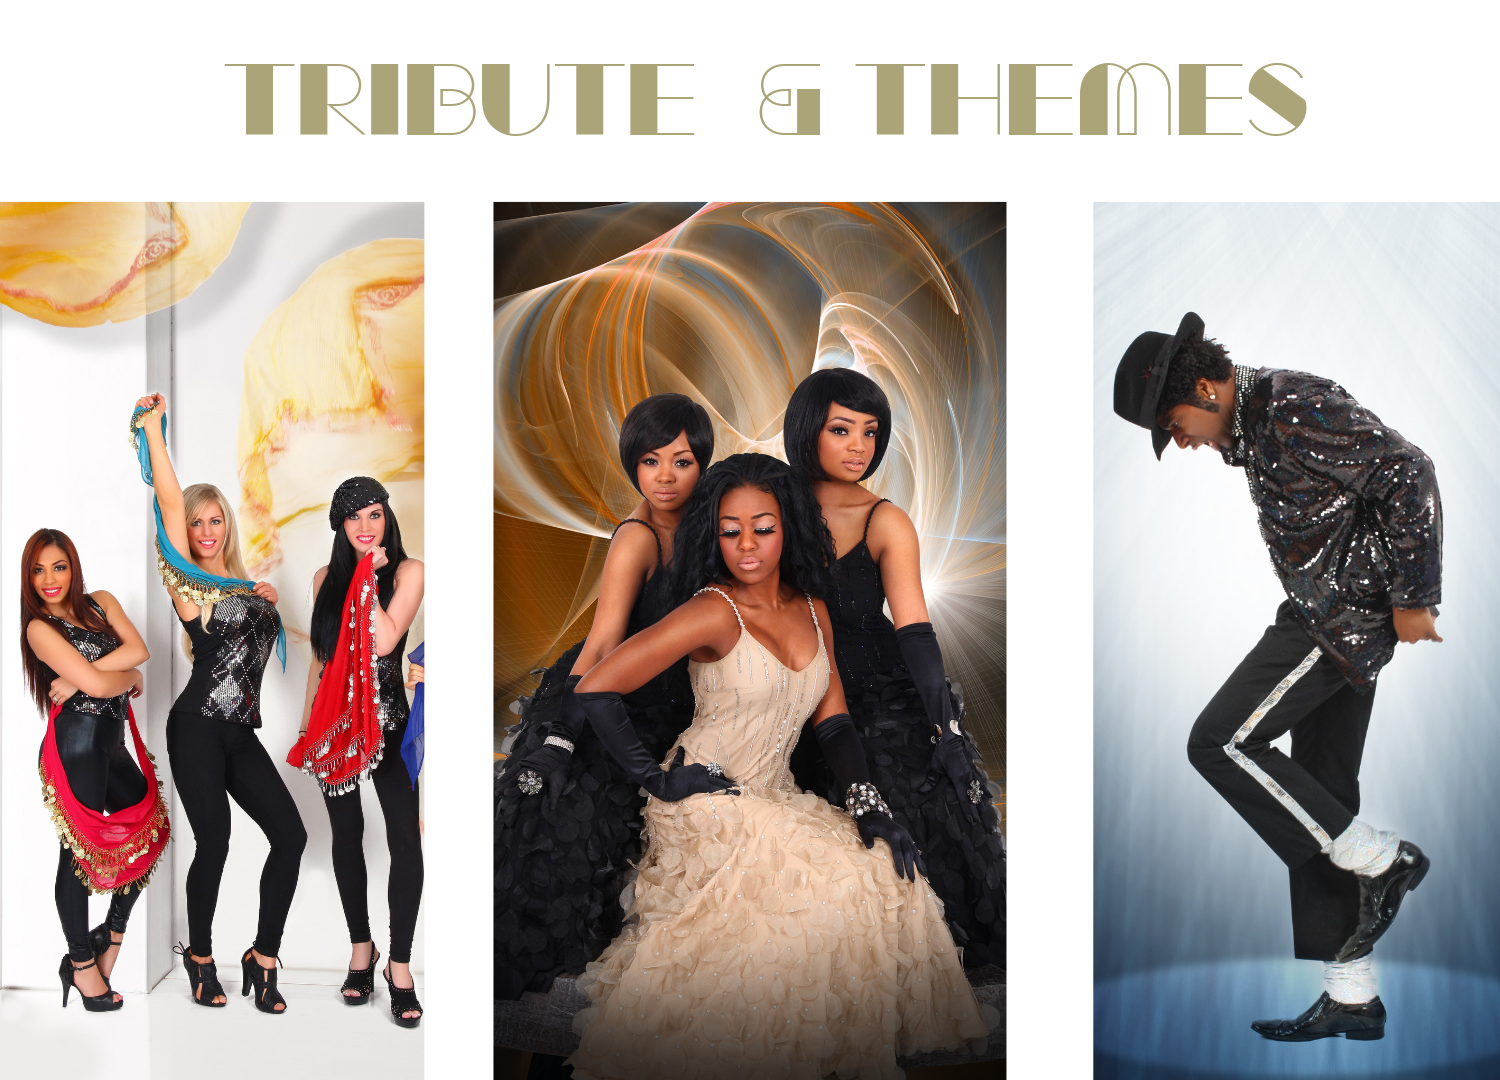 Tribute - - Prince Tribute- Motown & Soul Revue- Disco, 70's & 80's Rewind- Back 2 the Future with the Aristocats